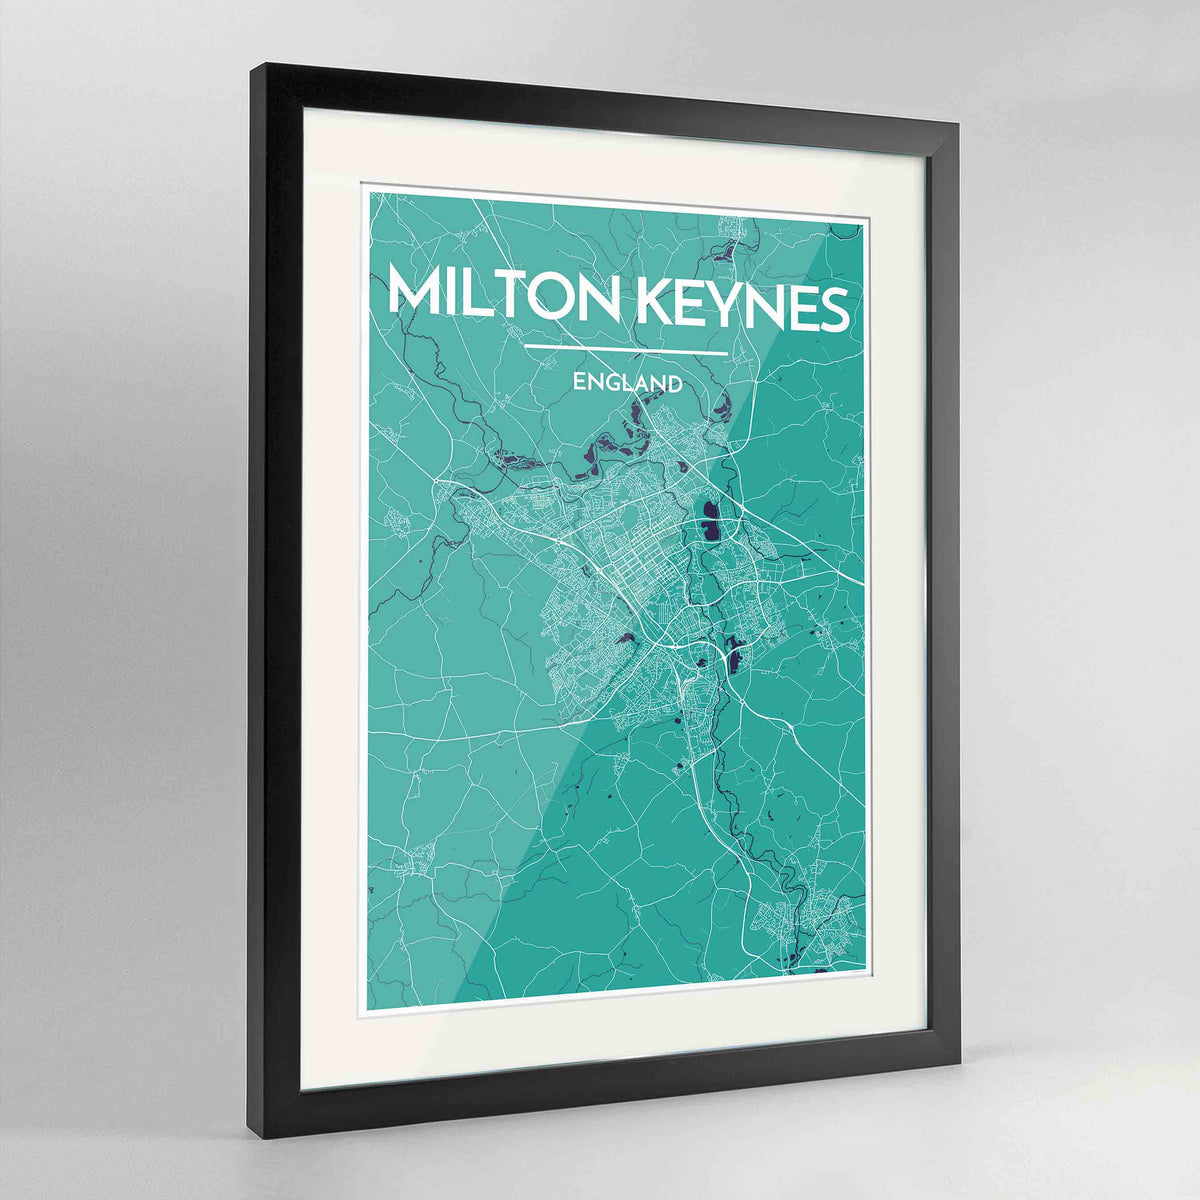 "Framed Milton Keynes Map Art Print 24x36"" Contemporary Black frame Point Two Design Group"